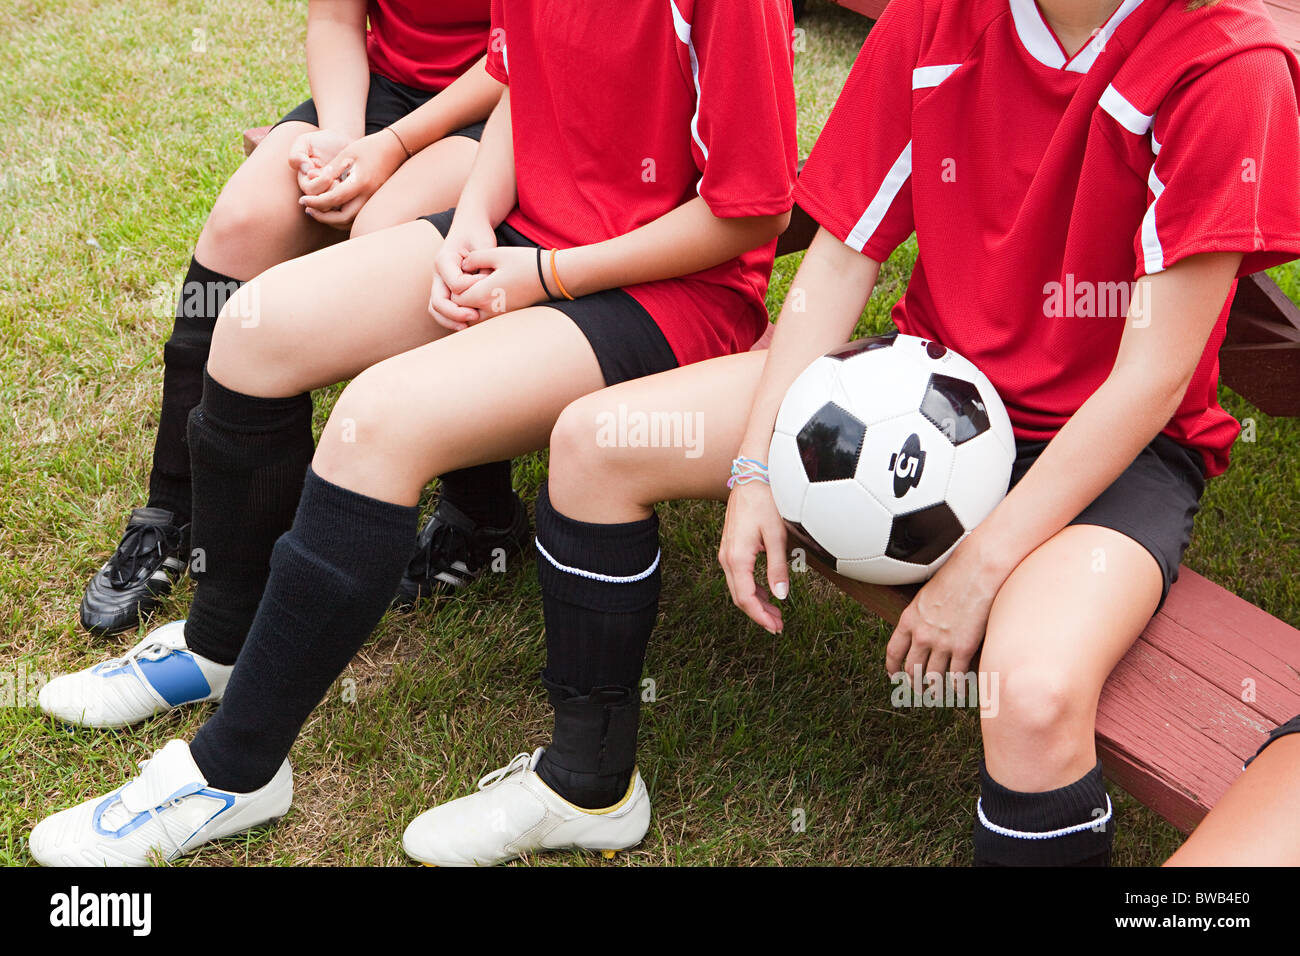 Cropped shot of girl soccer players Photo Stock